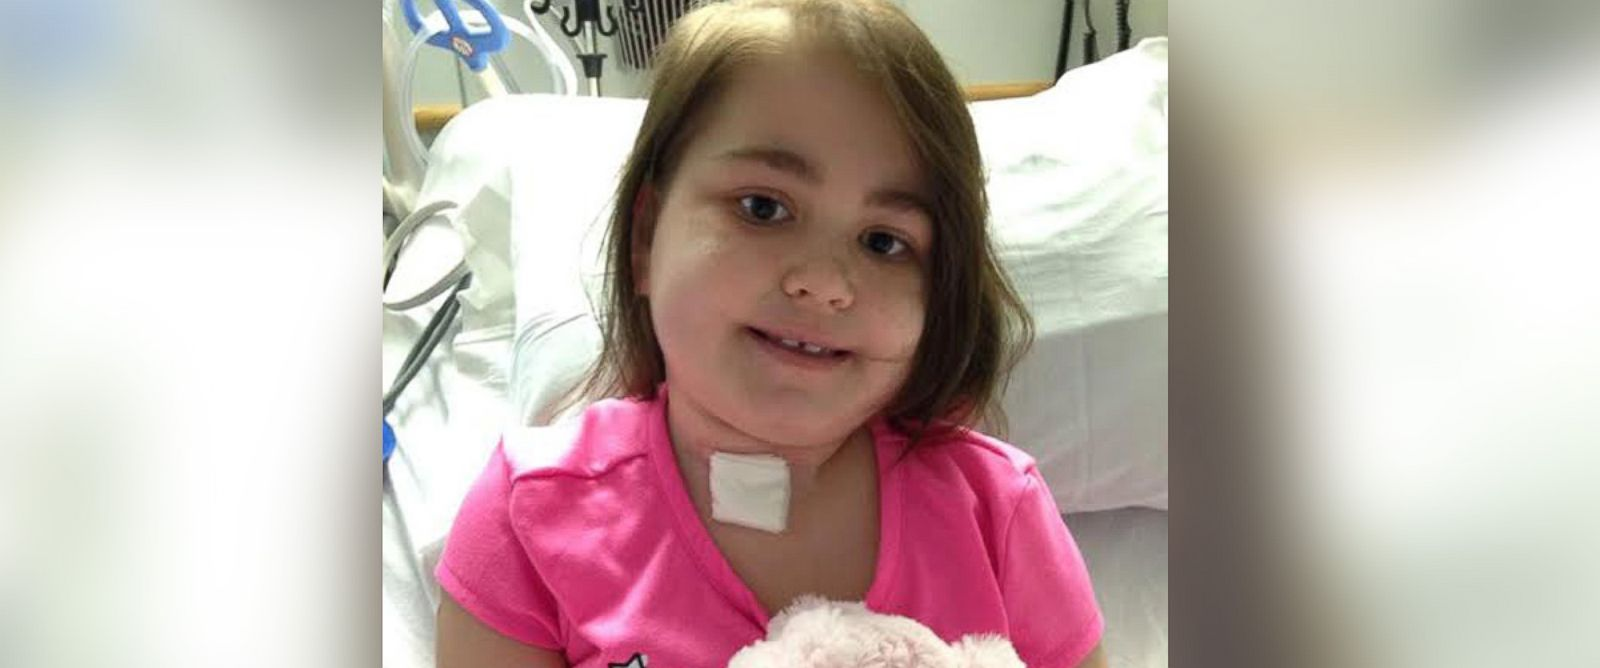 PHOTO: Sarah Murnaghan, who underwent a controversial adult lung transplant last year, had her tracheostomy removed.